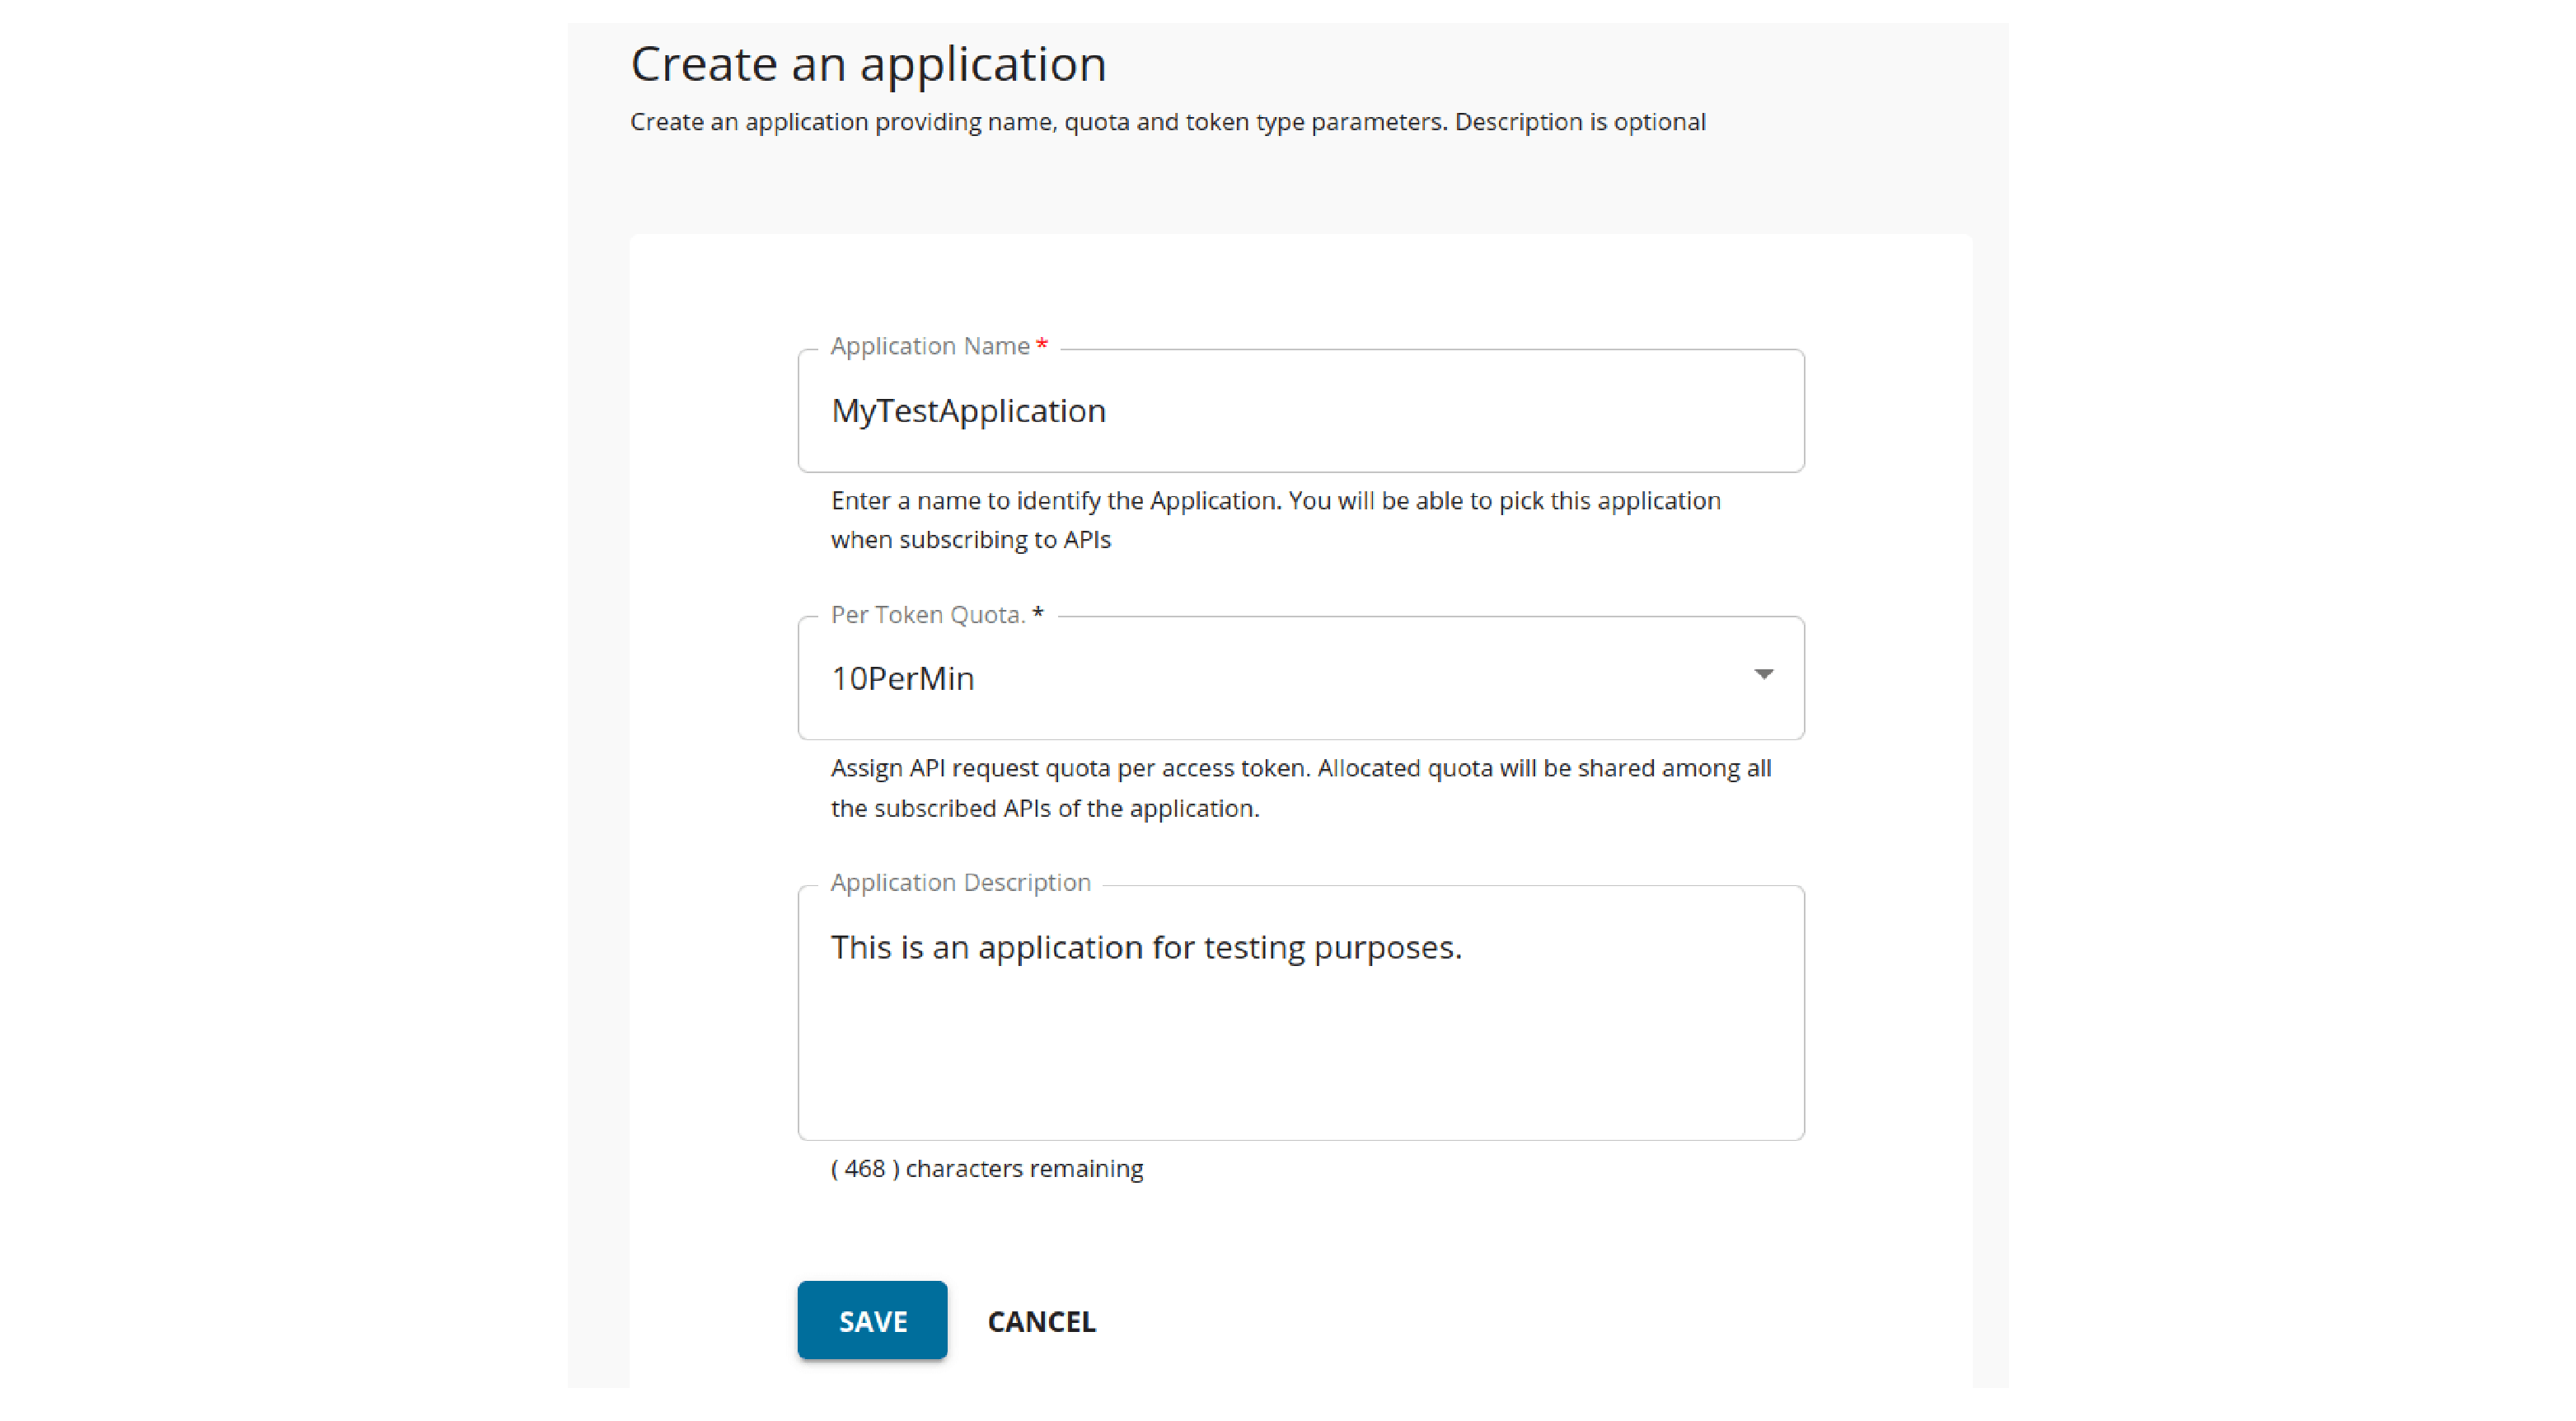 click Proceed